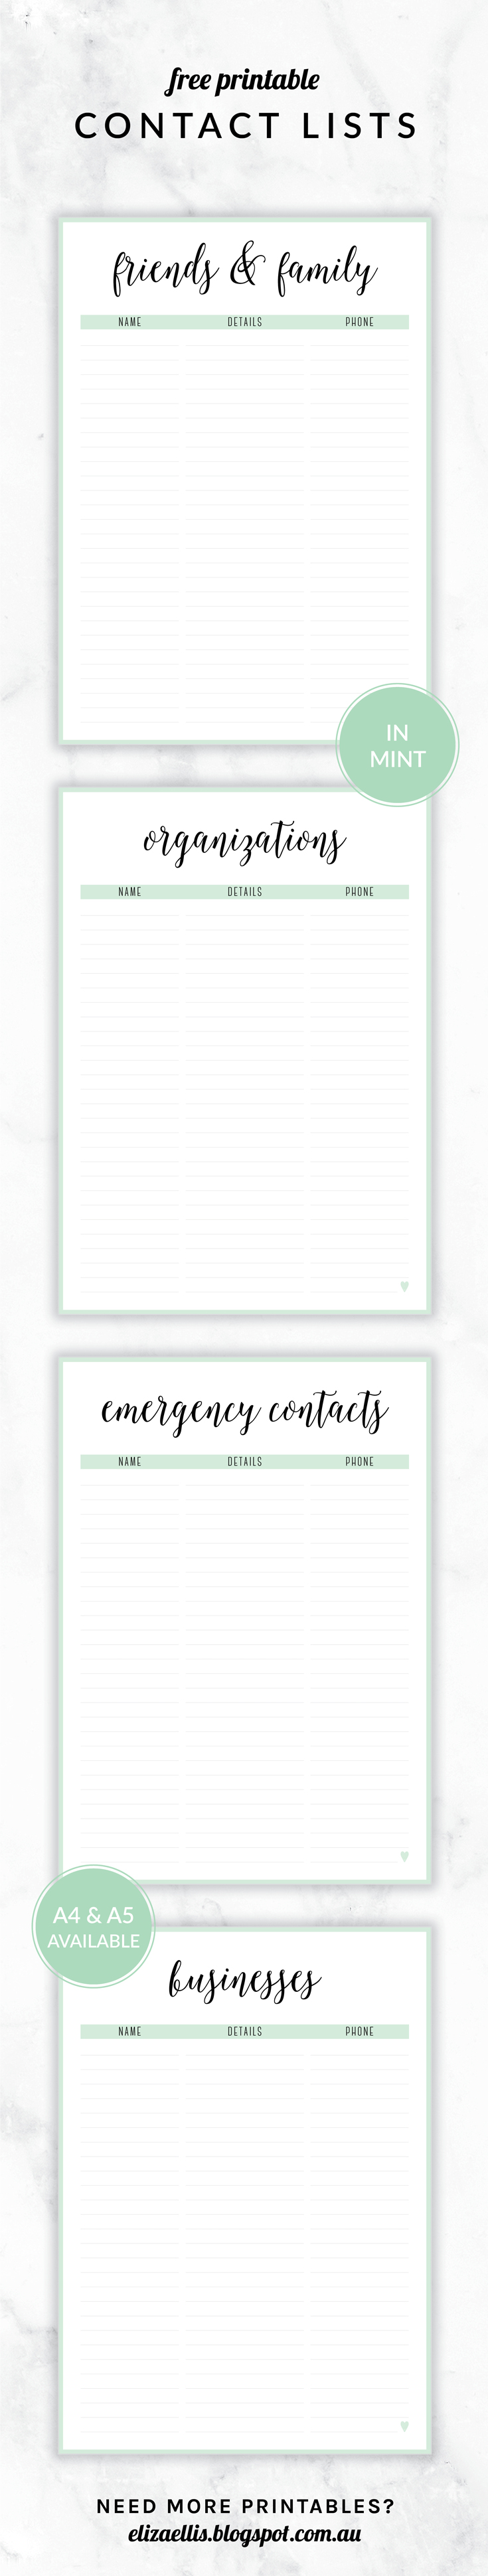 Free Printable Irma Contact Lists Eliza Ellis Including – Printable Contact List